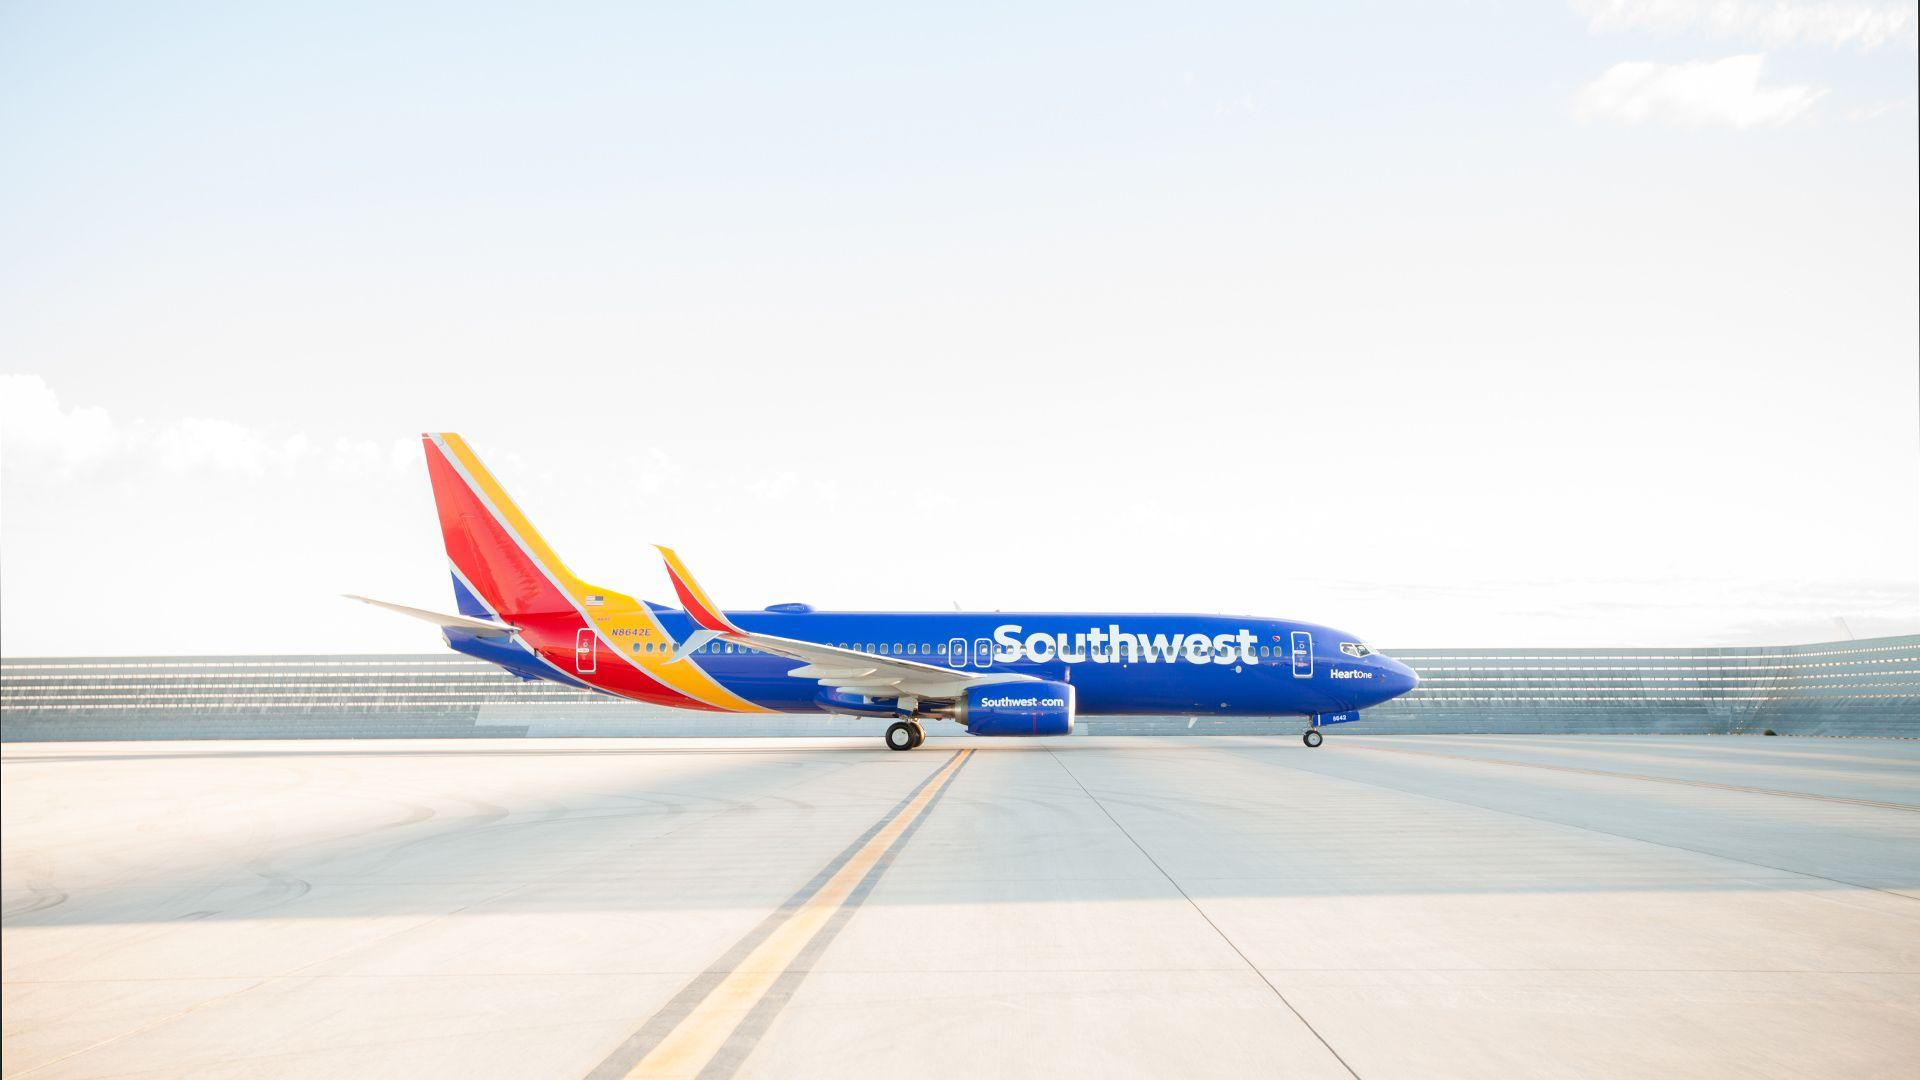 Southwest Airlines Wallpapers Wallpaper Cave HD Wallpapers Download Free Images Wallpaper [1000image.com]